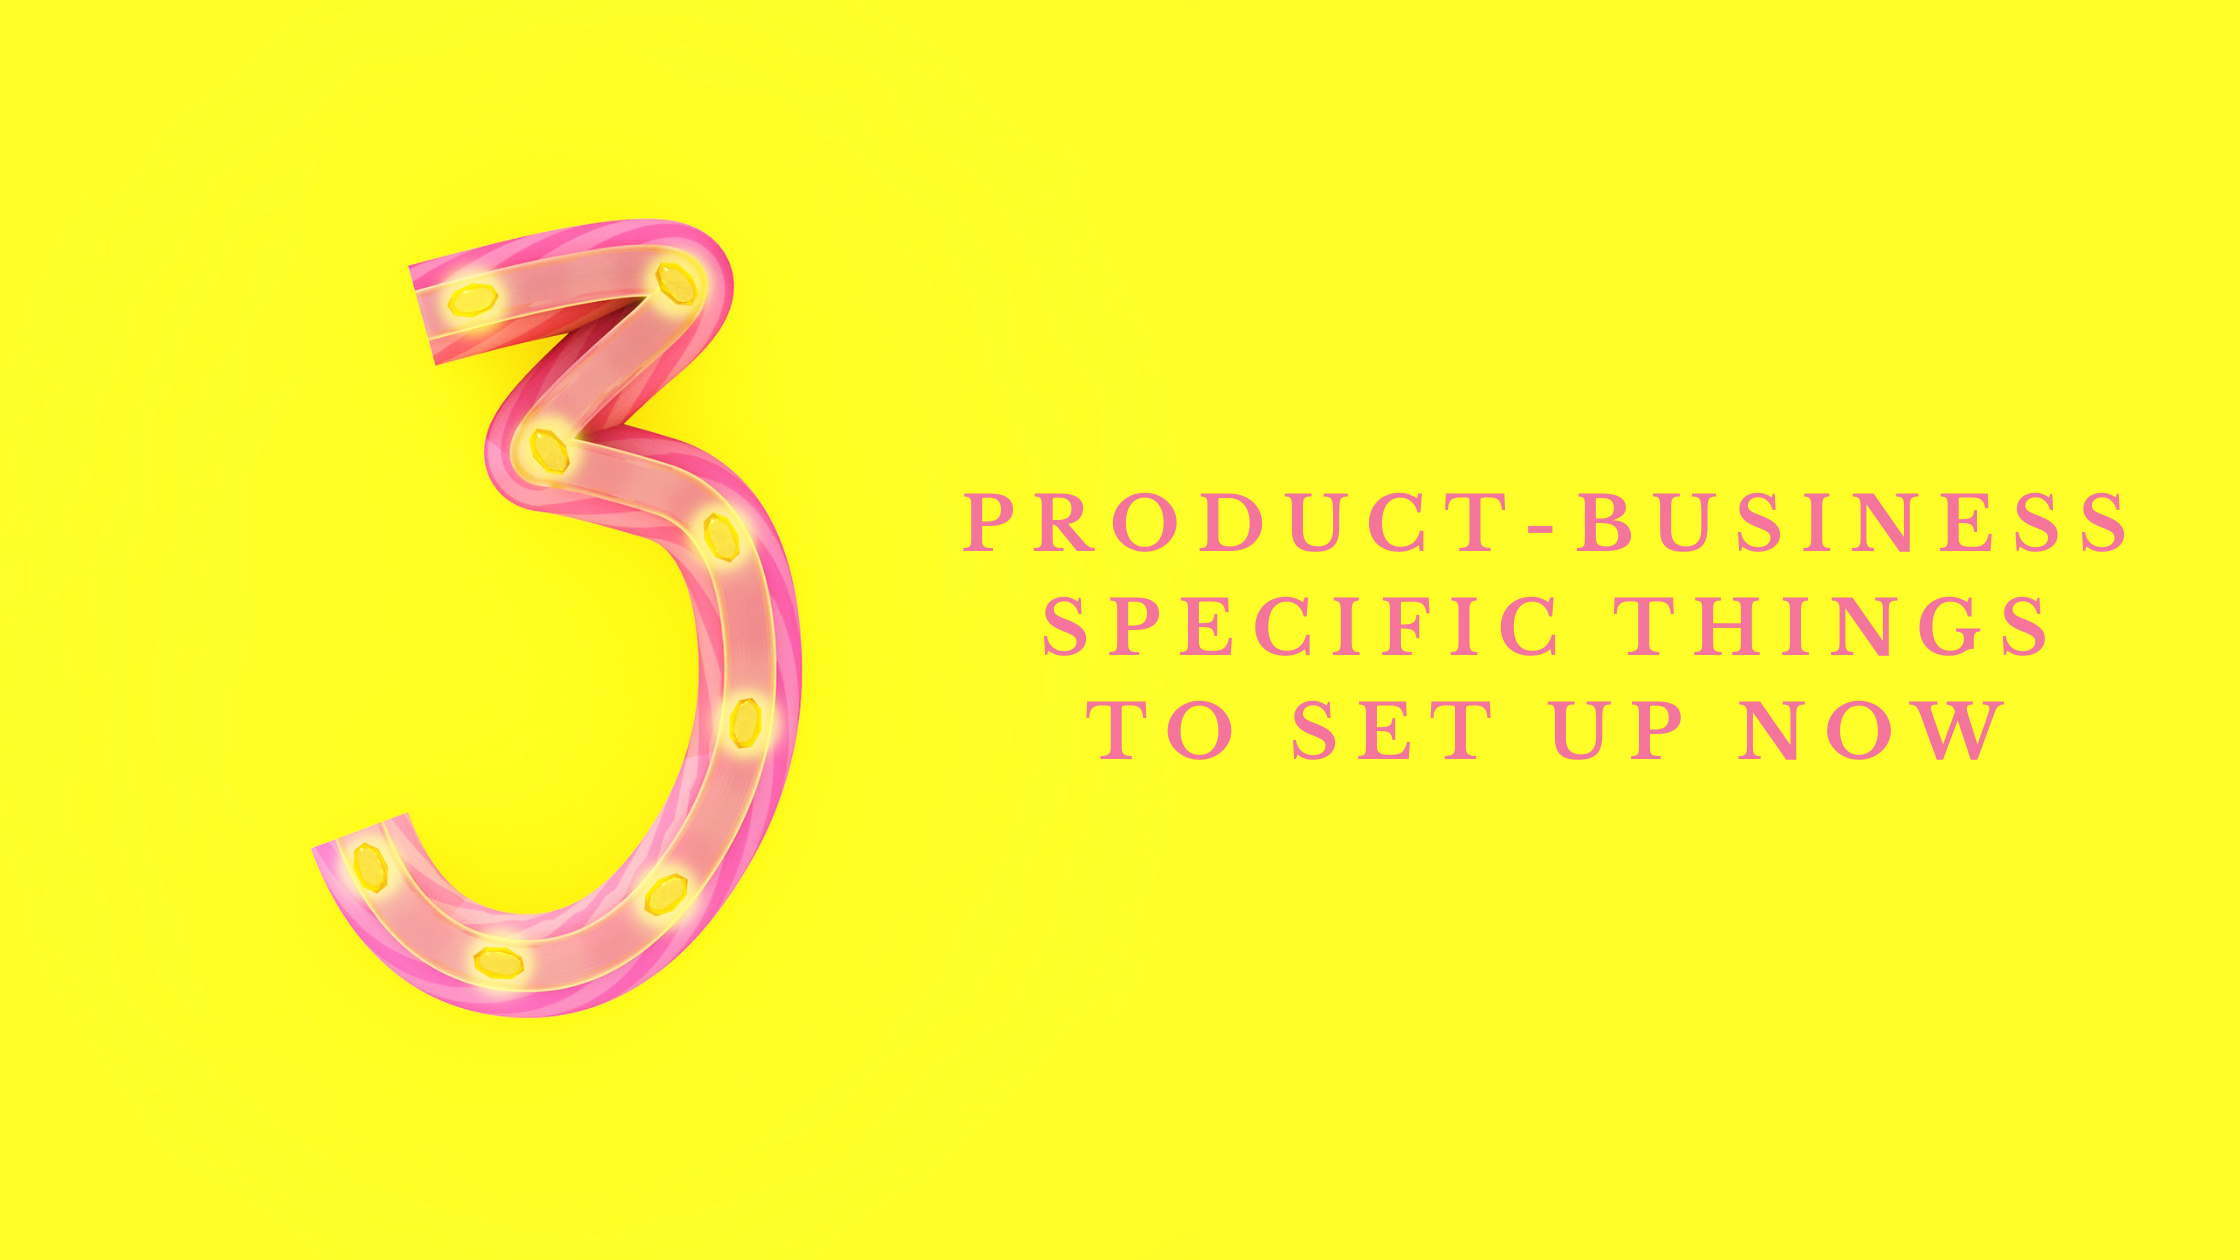 3 product-business specific things to set up now